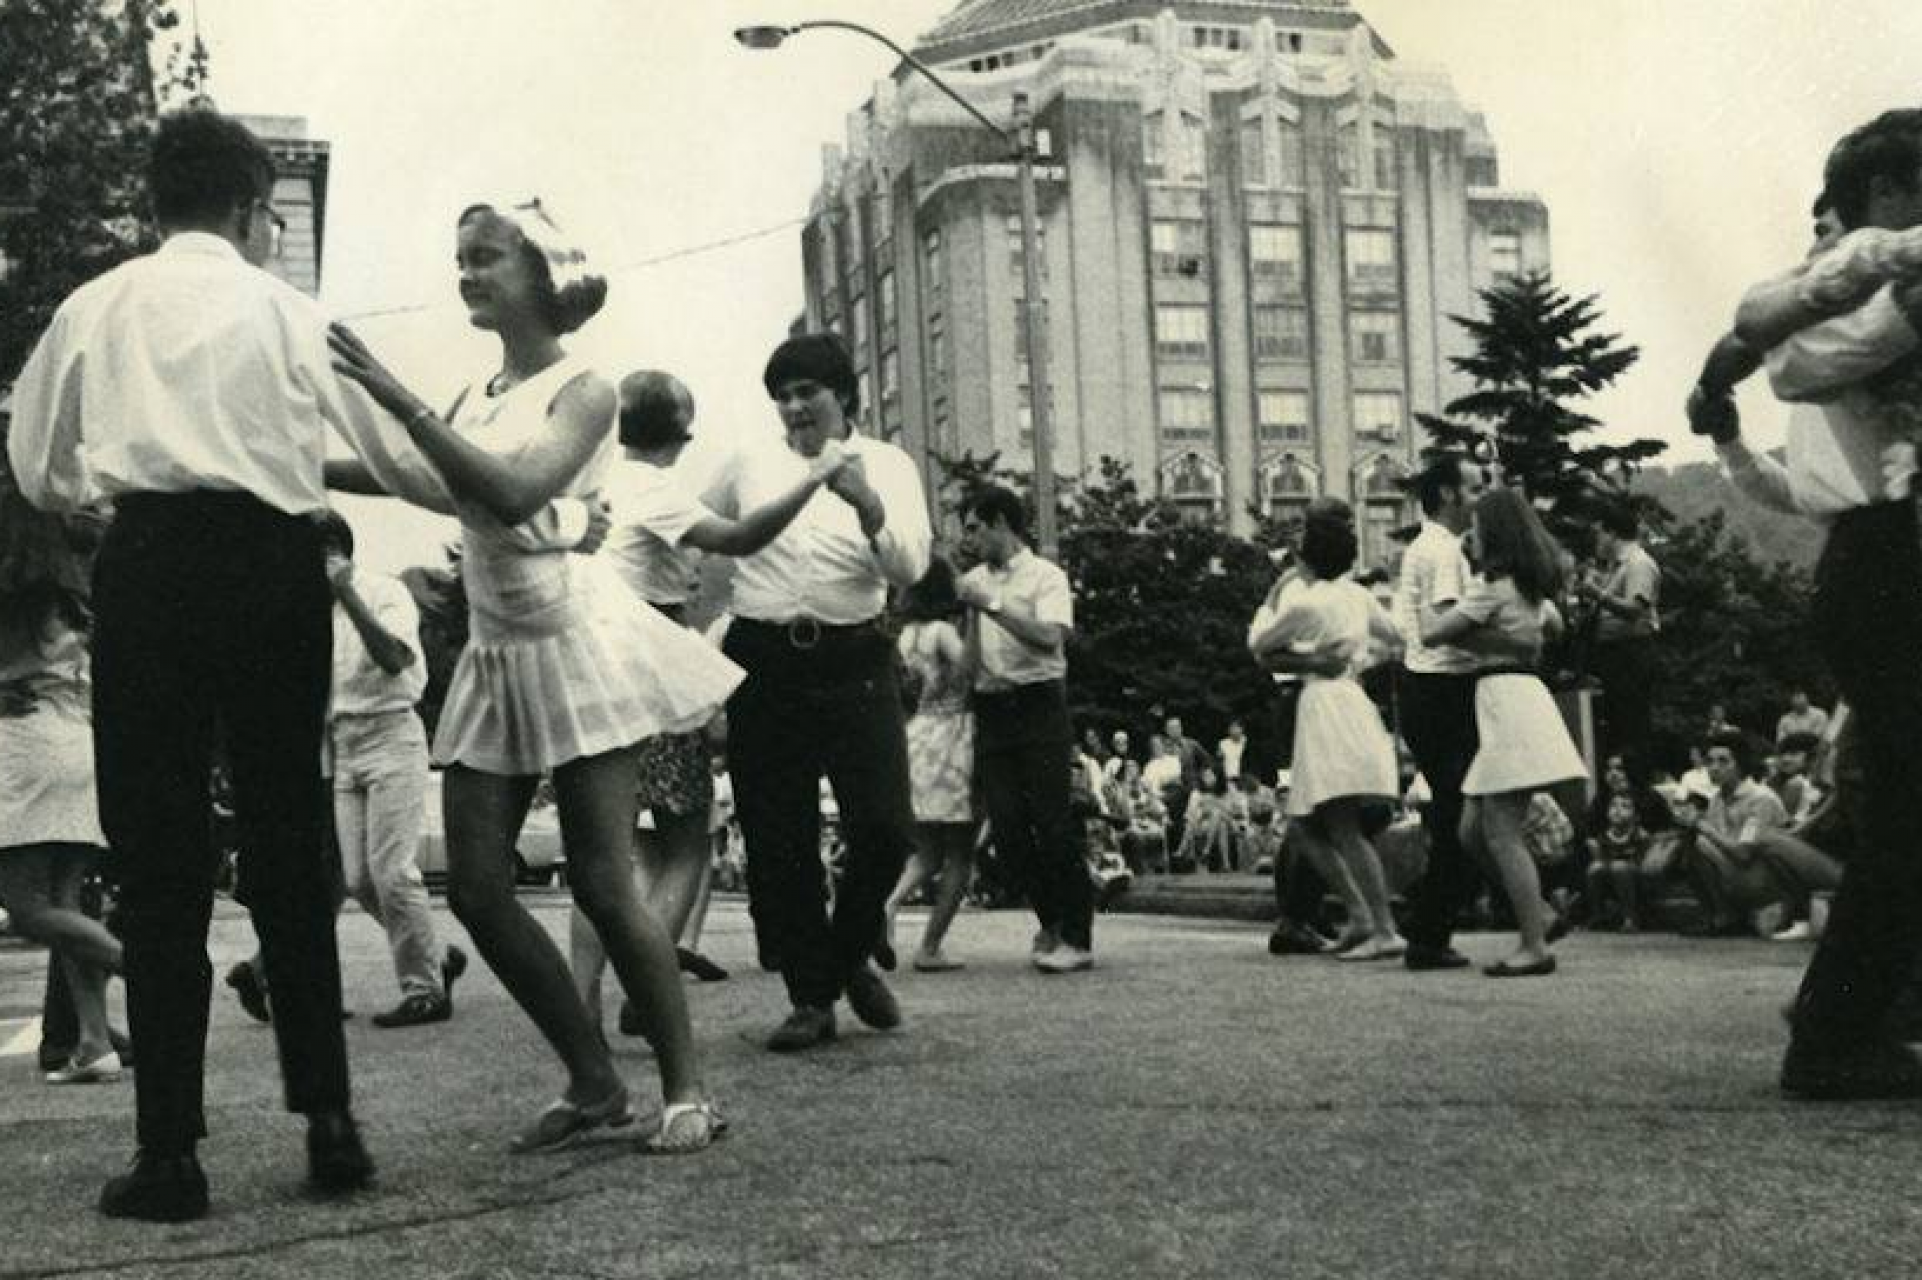 Archival photo of dancers at Shindig on the Green